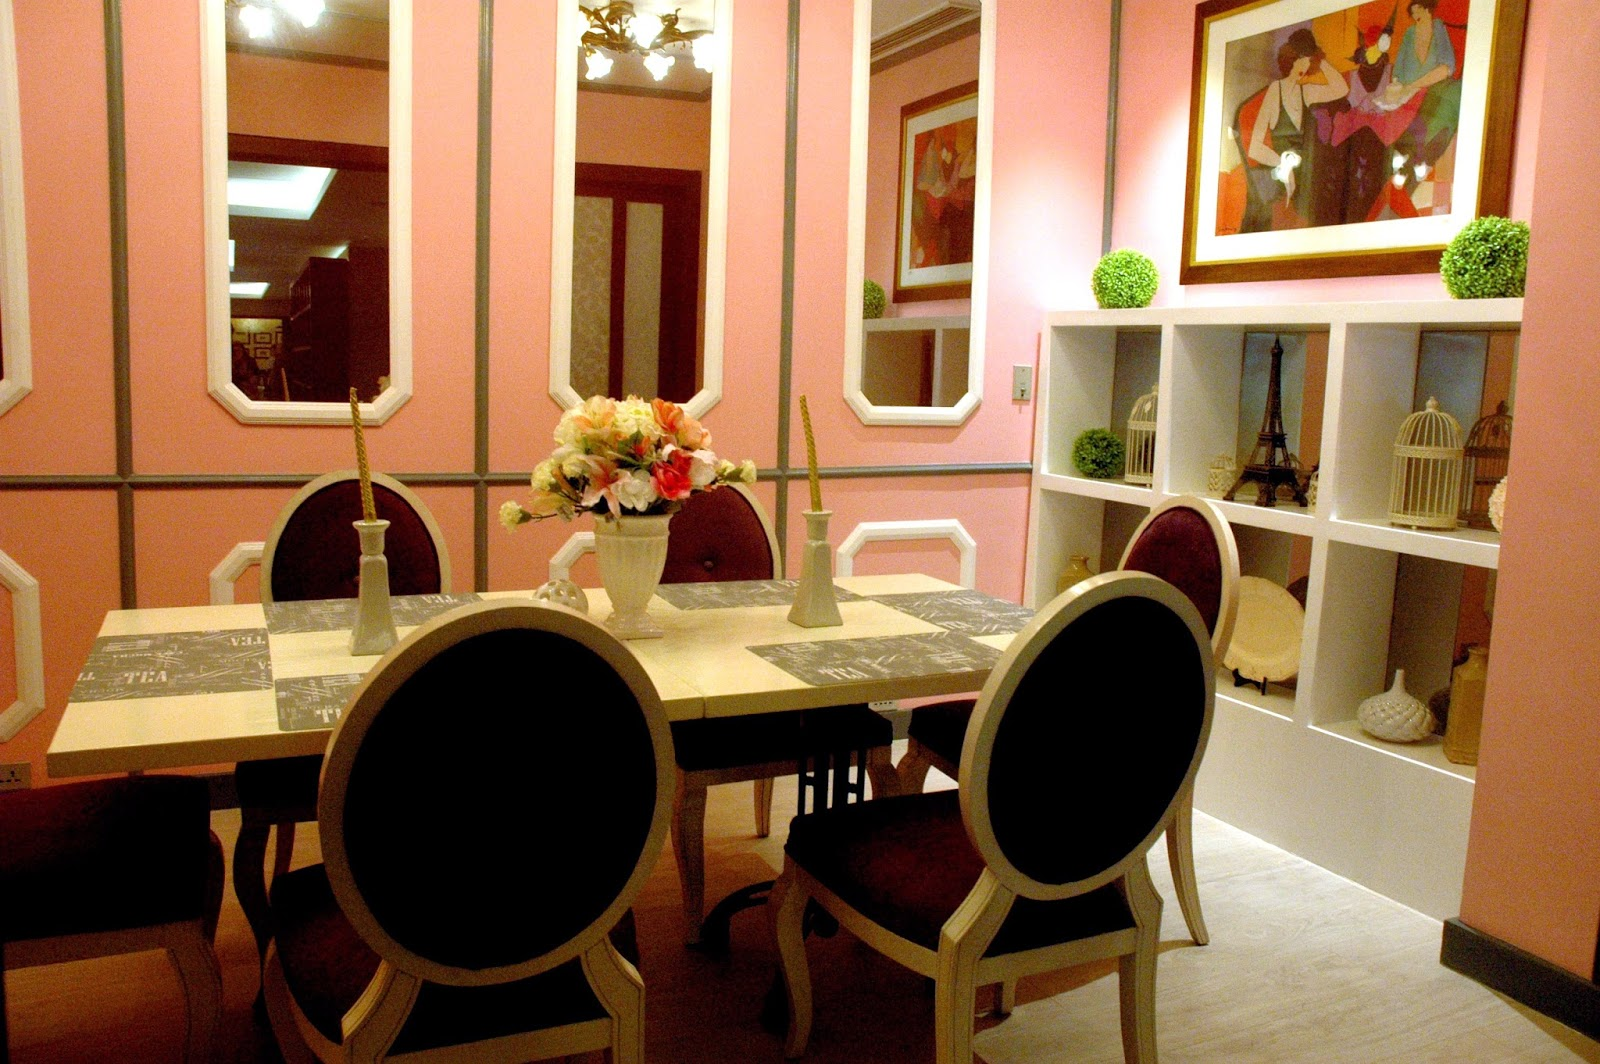 Jerome S Dining Room Sets